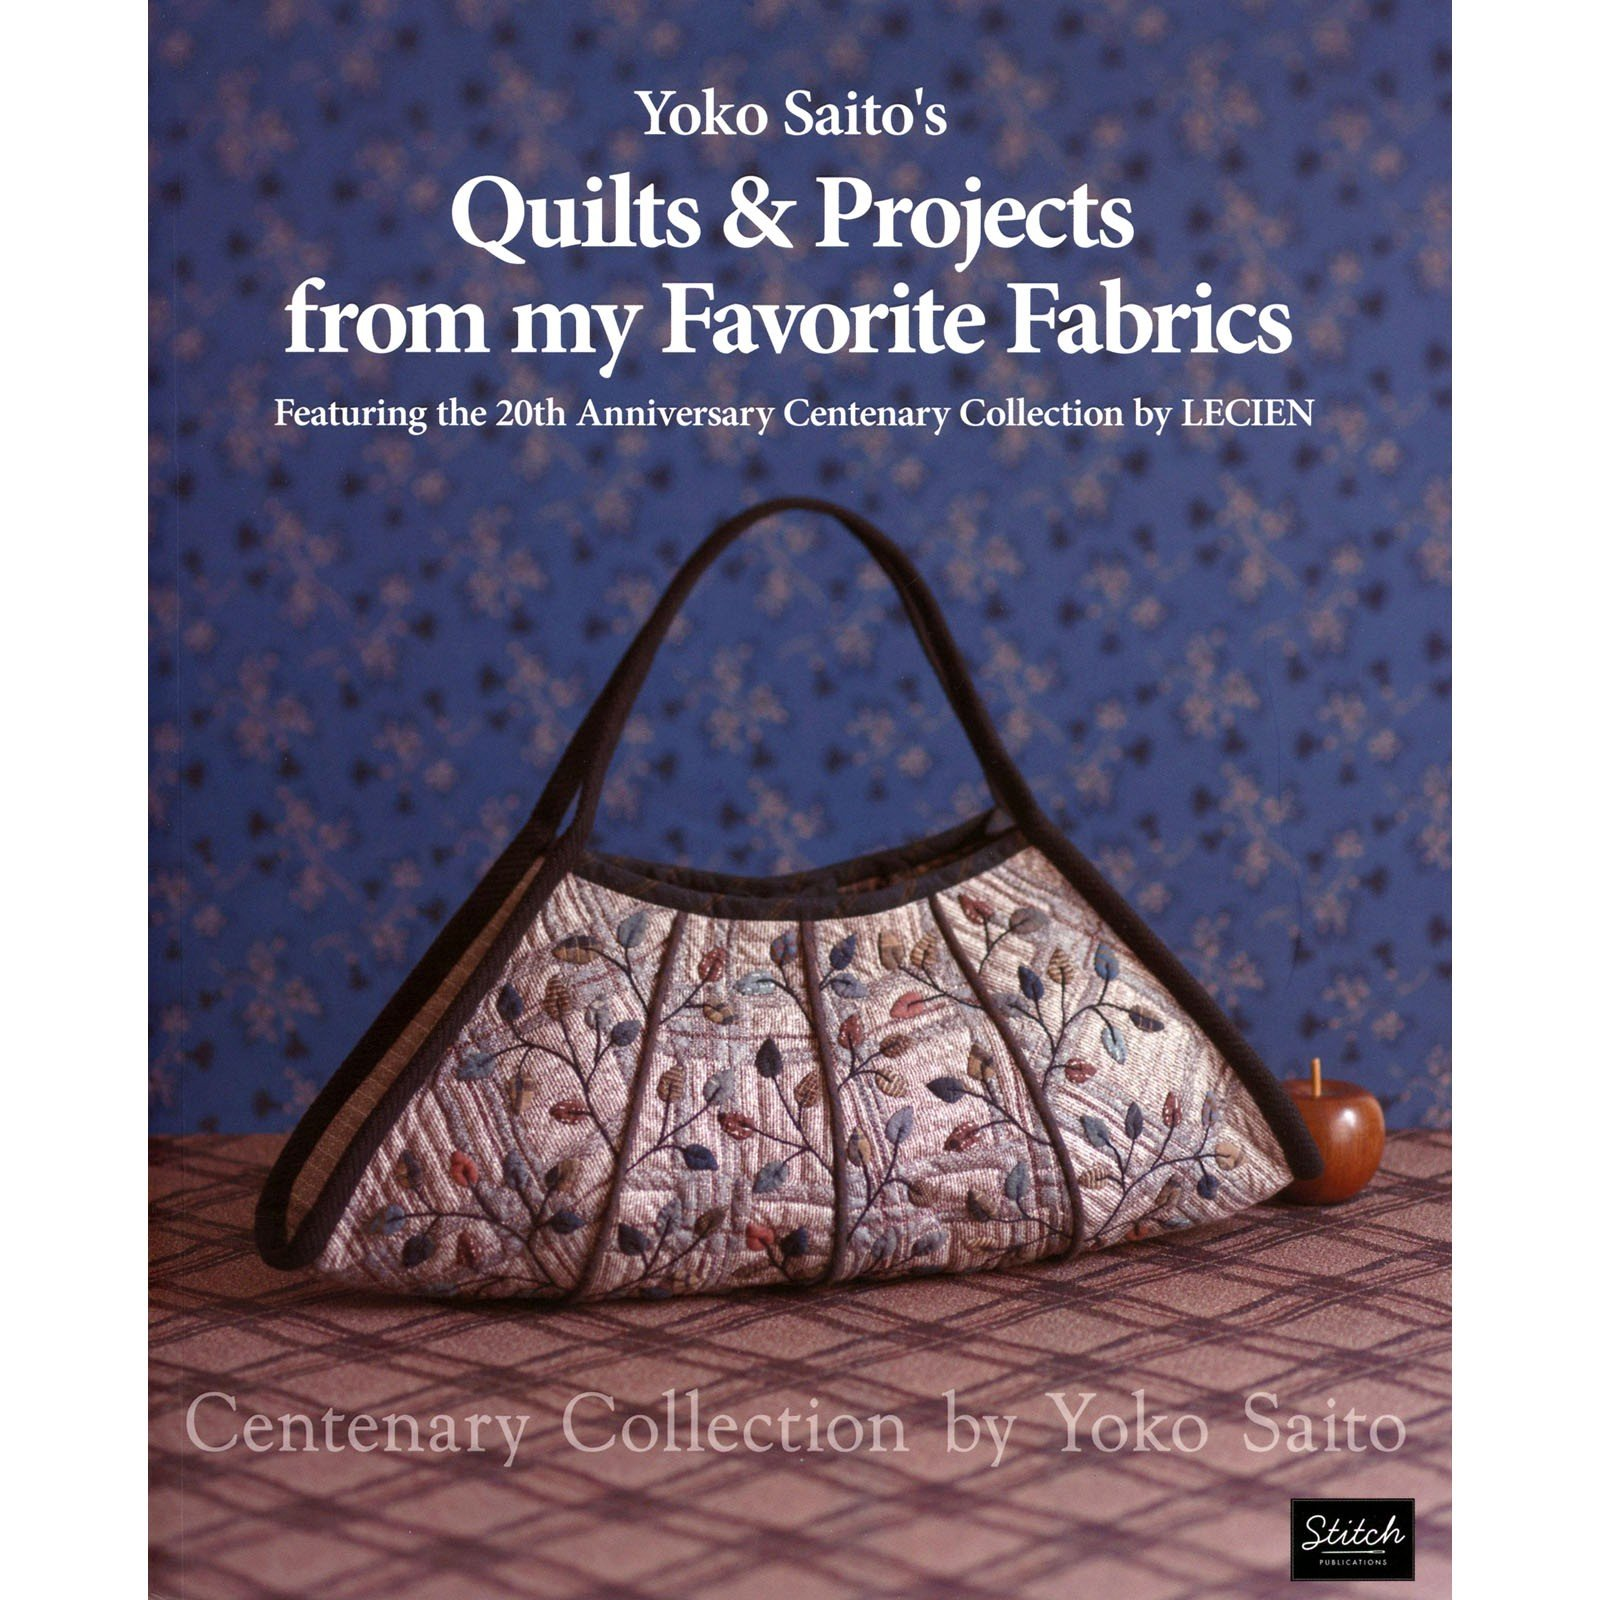 Quilts & Projects from my Favorite Fabrics